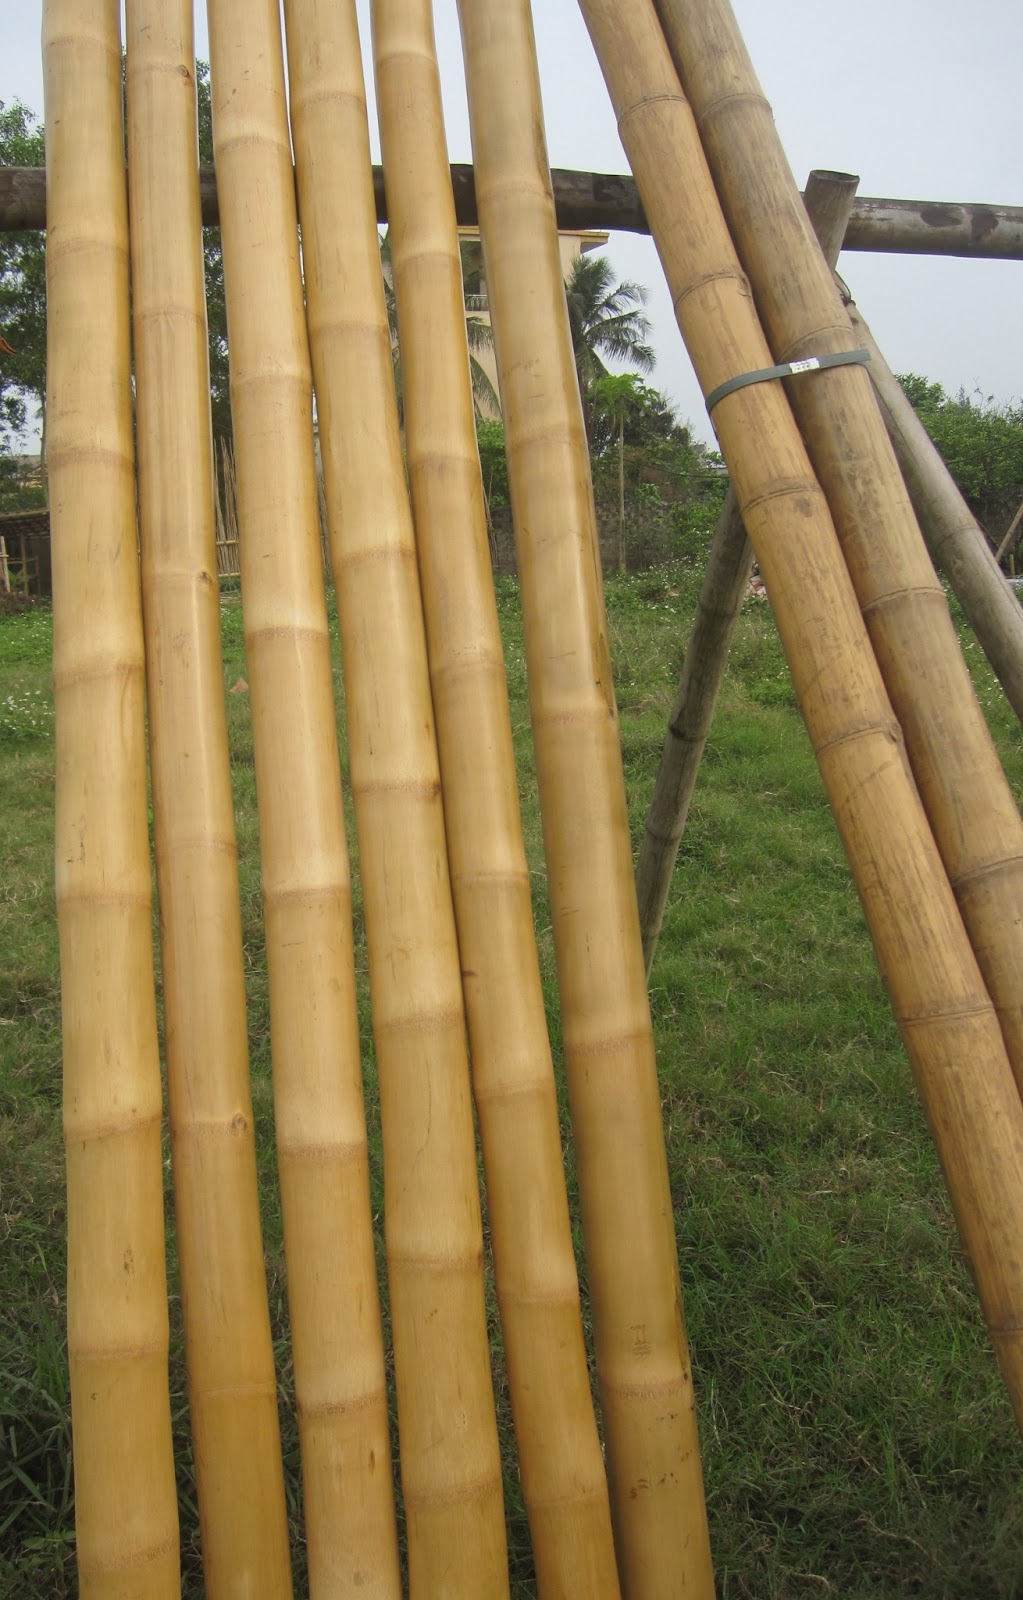 2 8 Bamboo Poles Natural Sanded Carbonized 10 Cane Stick Stake 3in 4 5 6 12 In Bundles